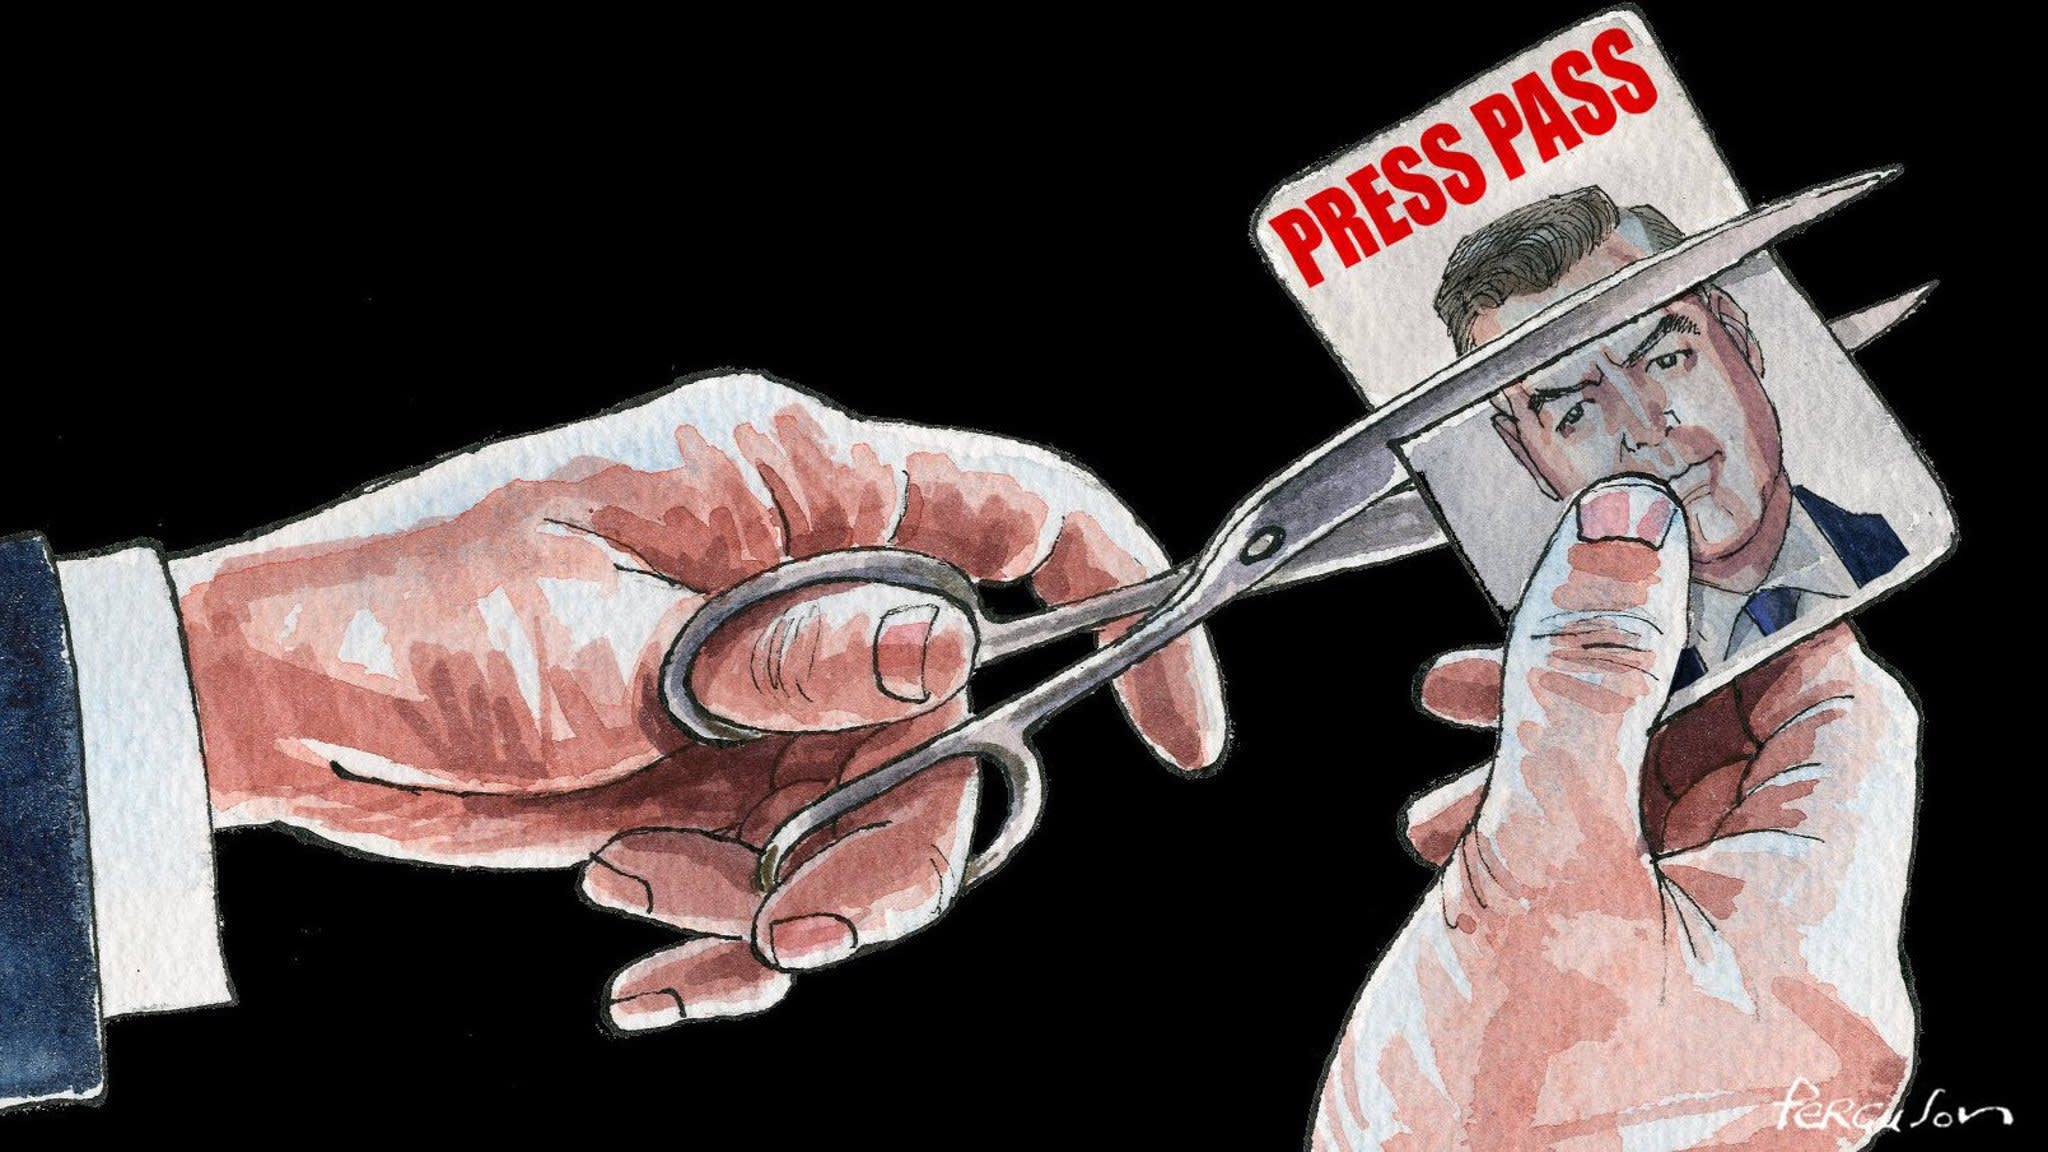 Donald Trump and the global assault on press freedom